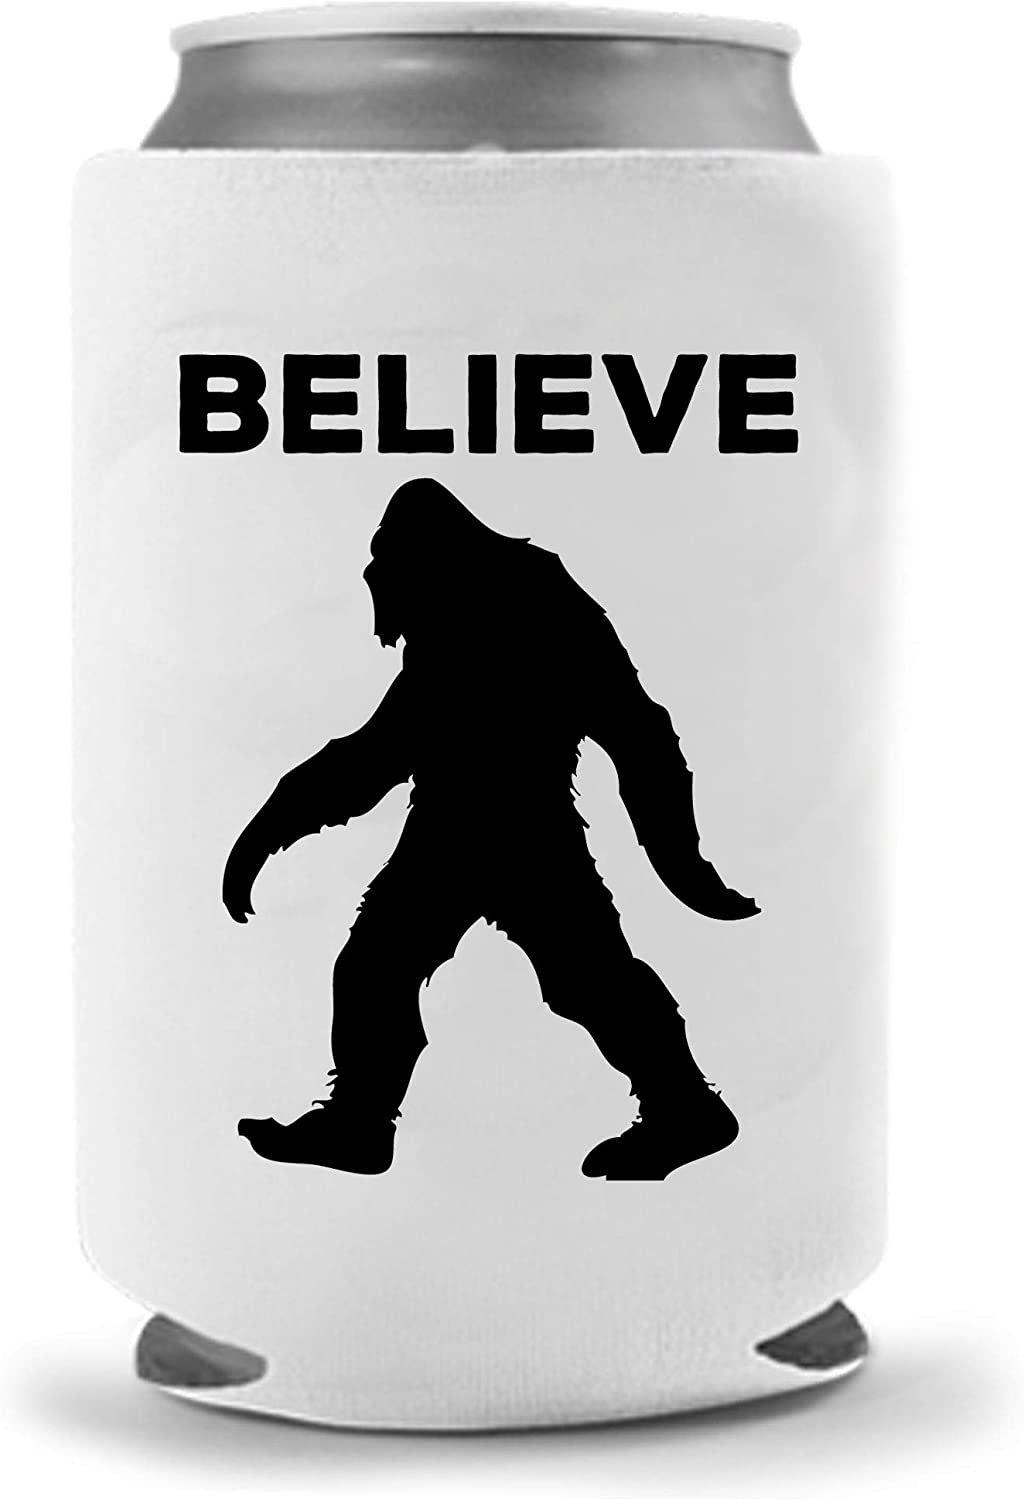 Believe Sasquatch | Bigfoot Funny Novelty Can Cooler Coolie Huggie | Beer Beverage Holder - Beer Gifts Home - Quality Neoprene Sasquatch Bigfoot Gifts Can Cooler